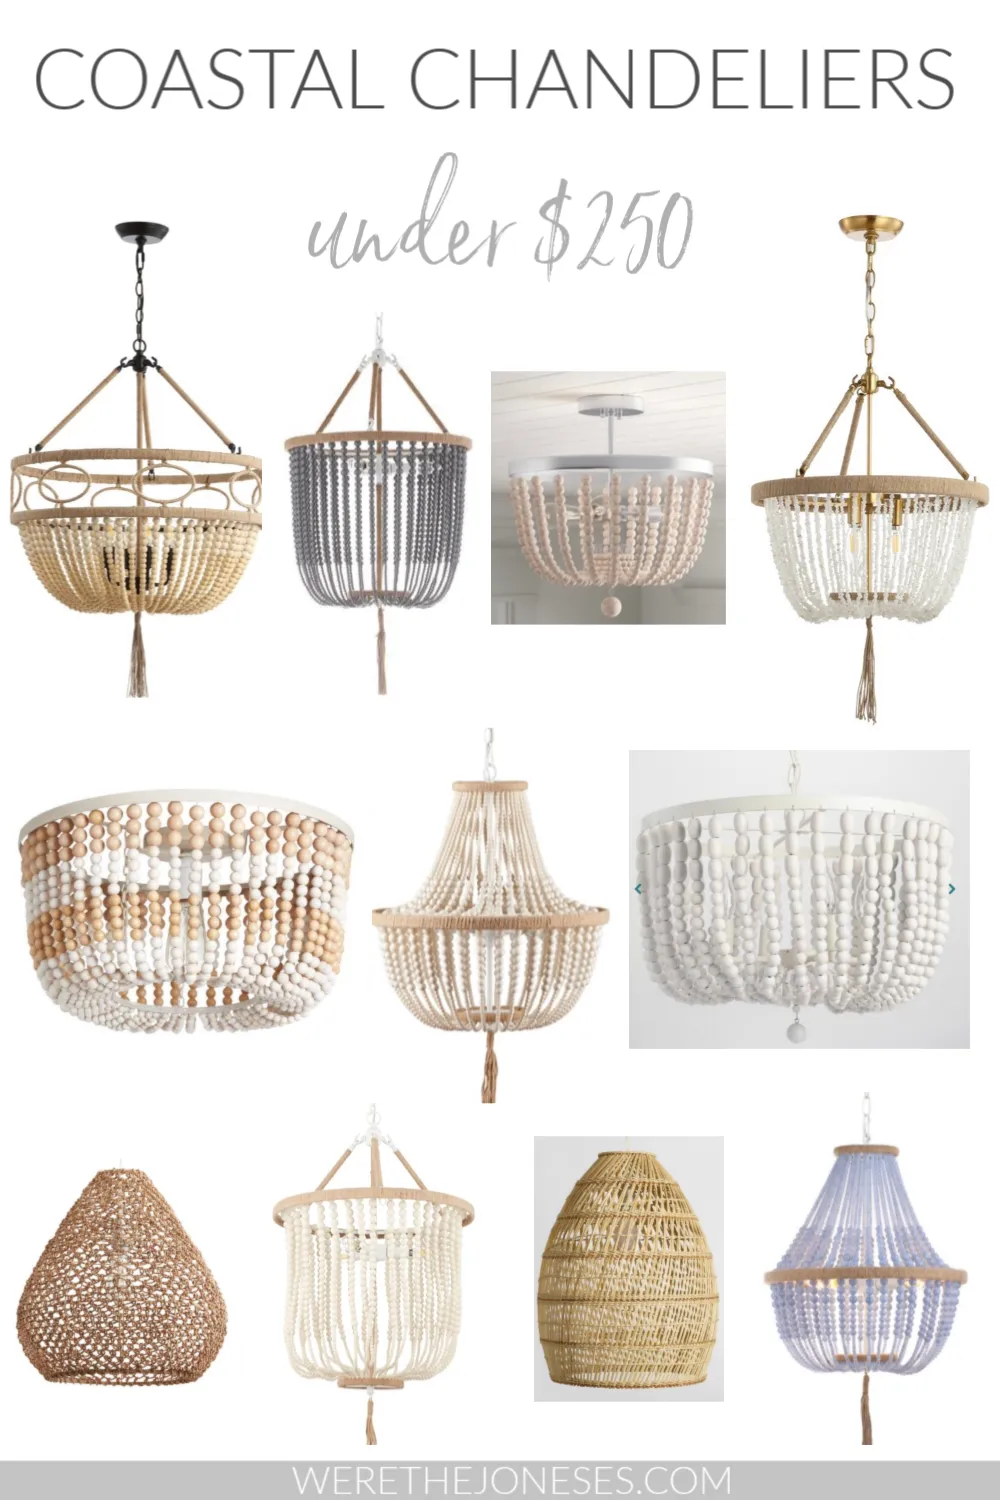 12 Coastal Chandeliers Under $250 - Affordable Lighting For Your Home » We're The Joneses